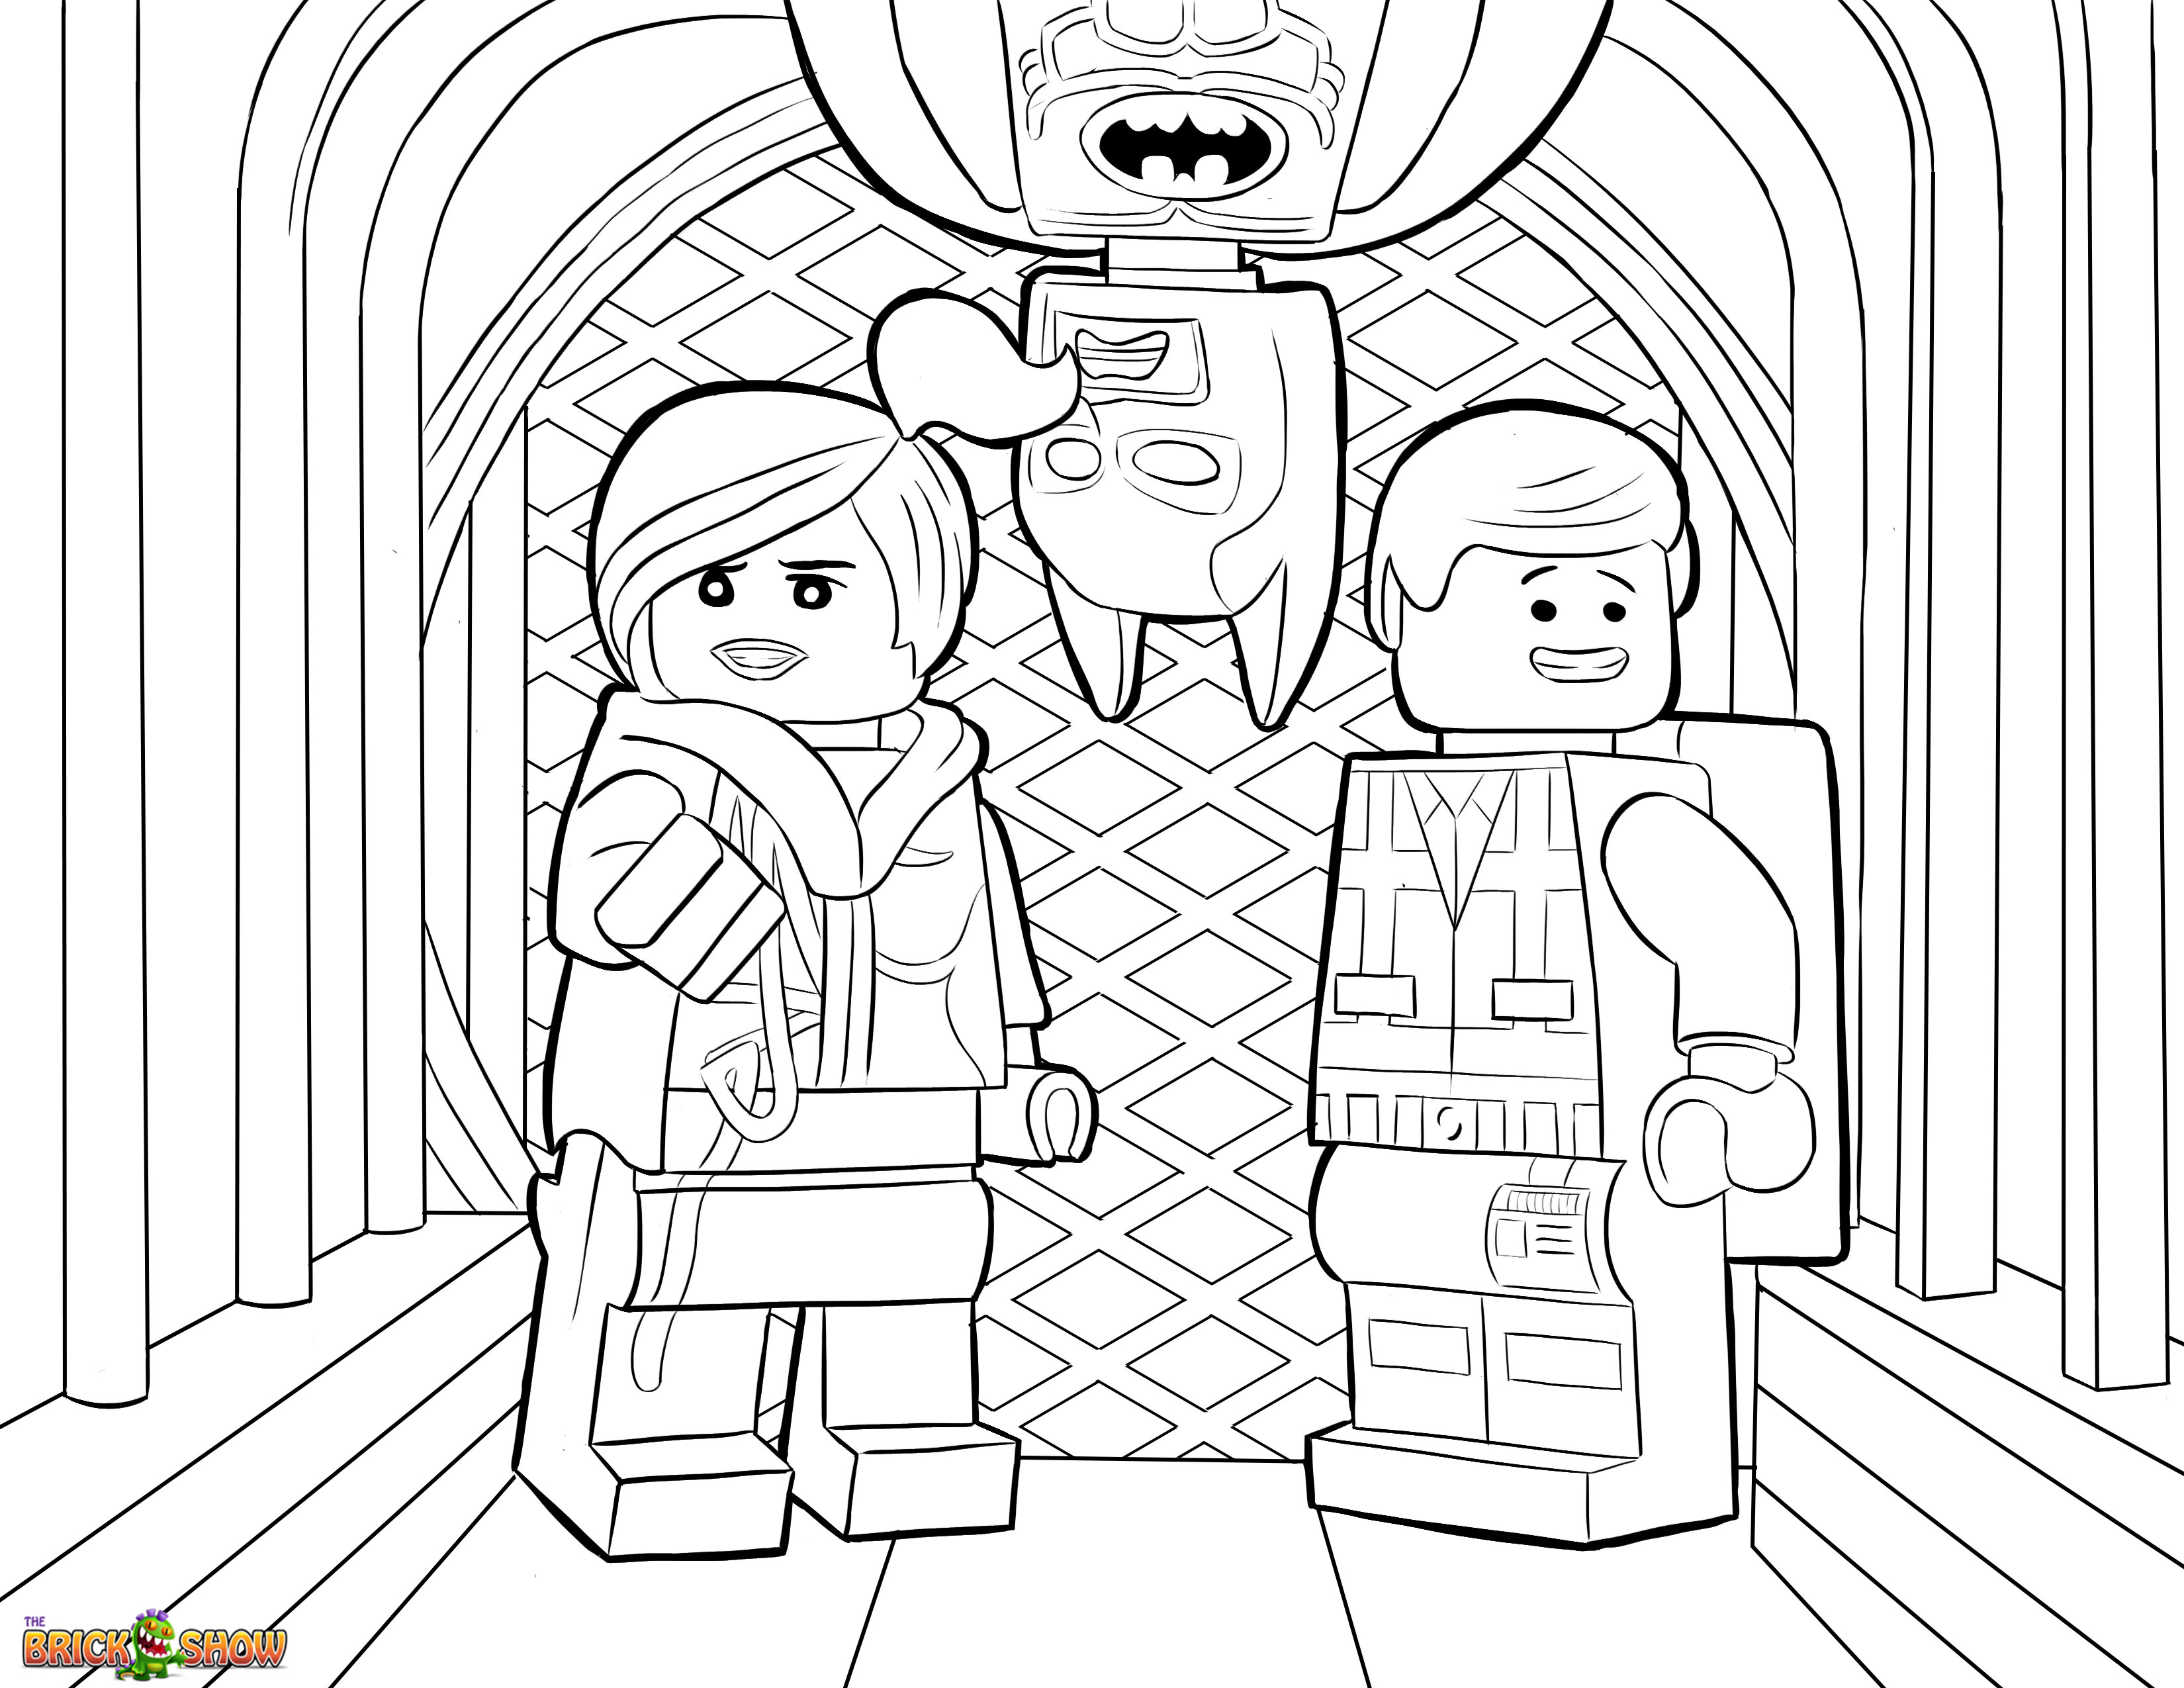 Ninjago Movie Coloring Pages At Getdrawings Com Free For